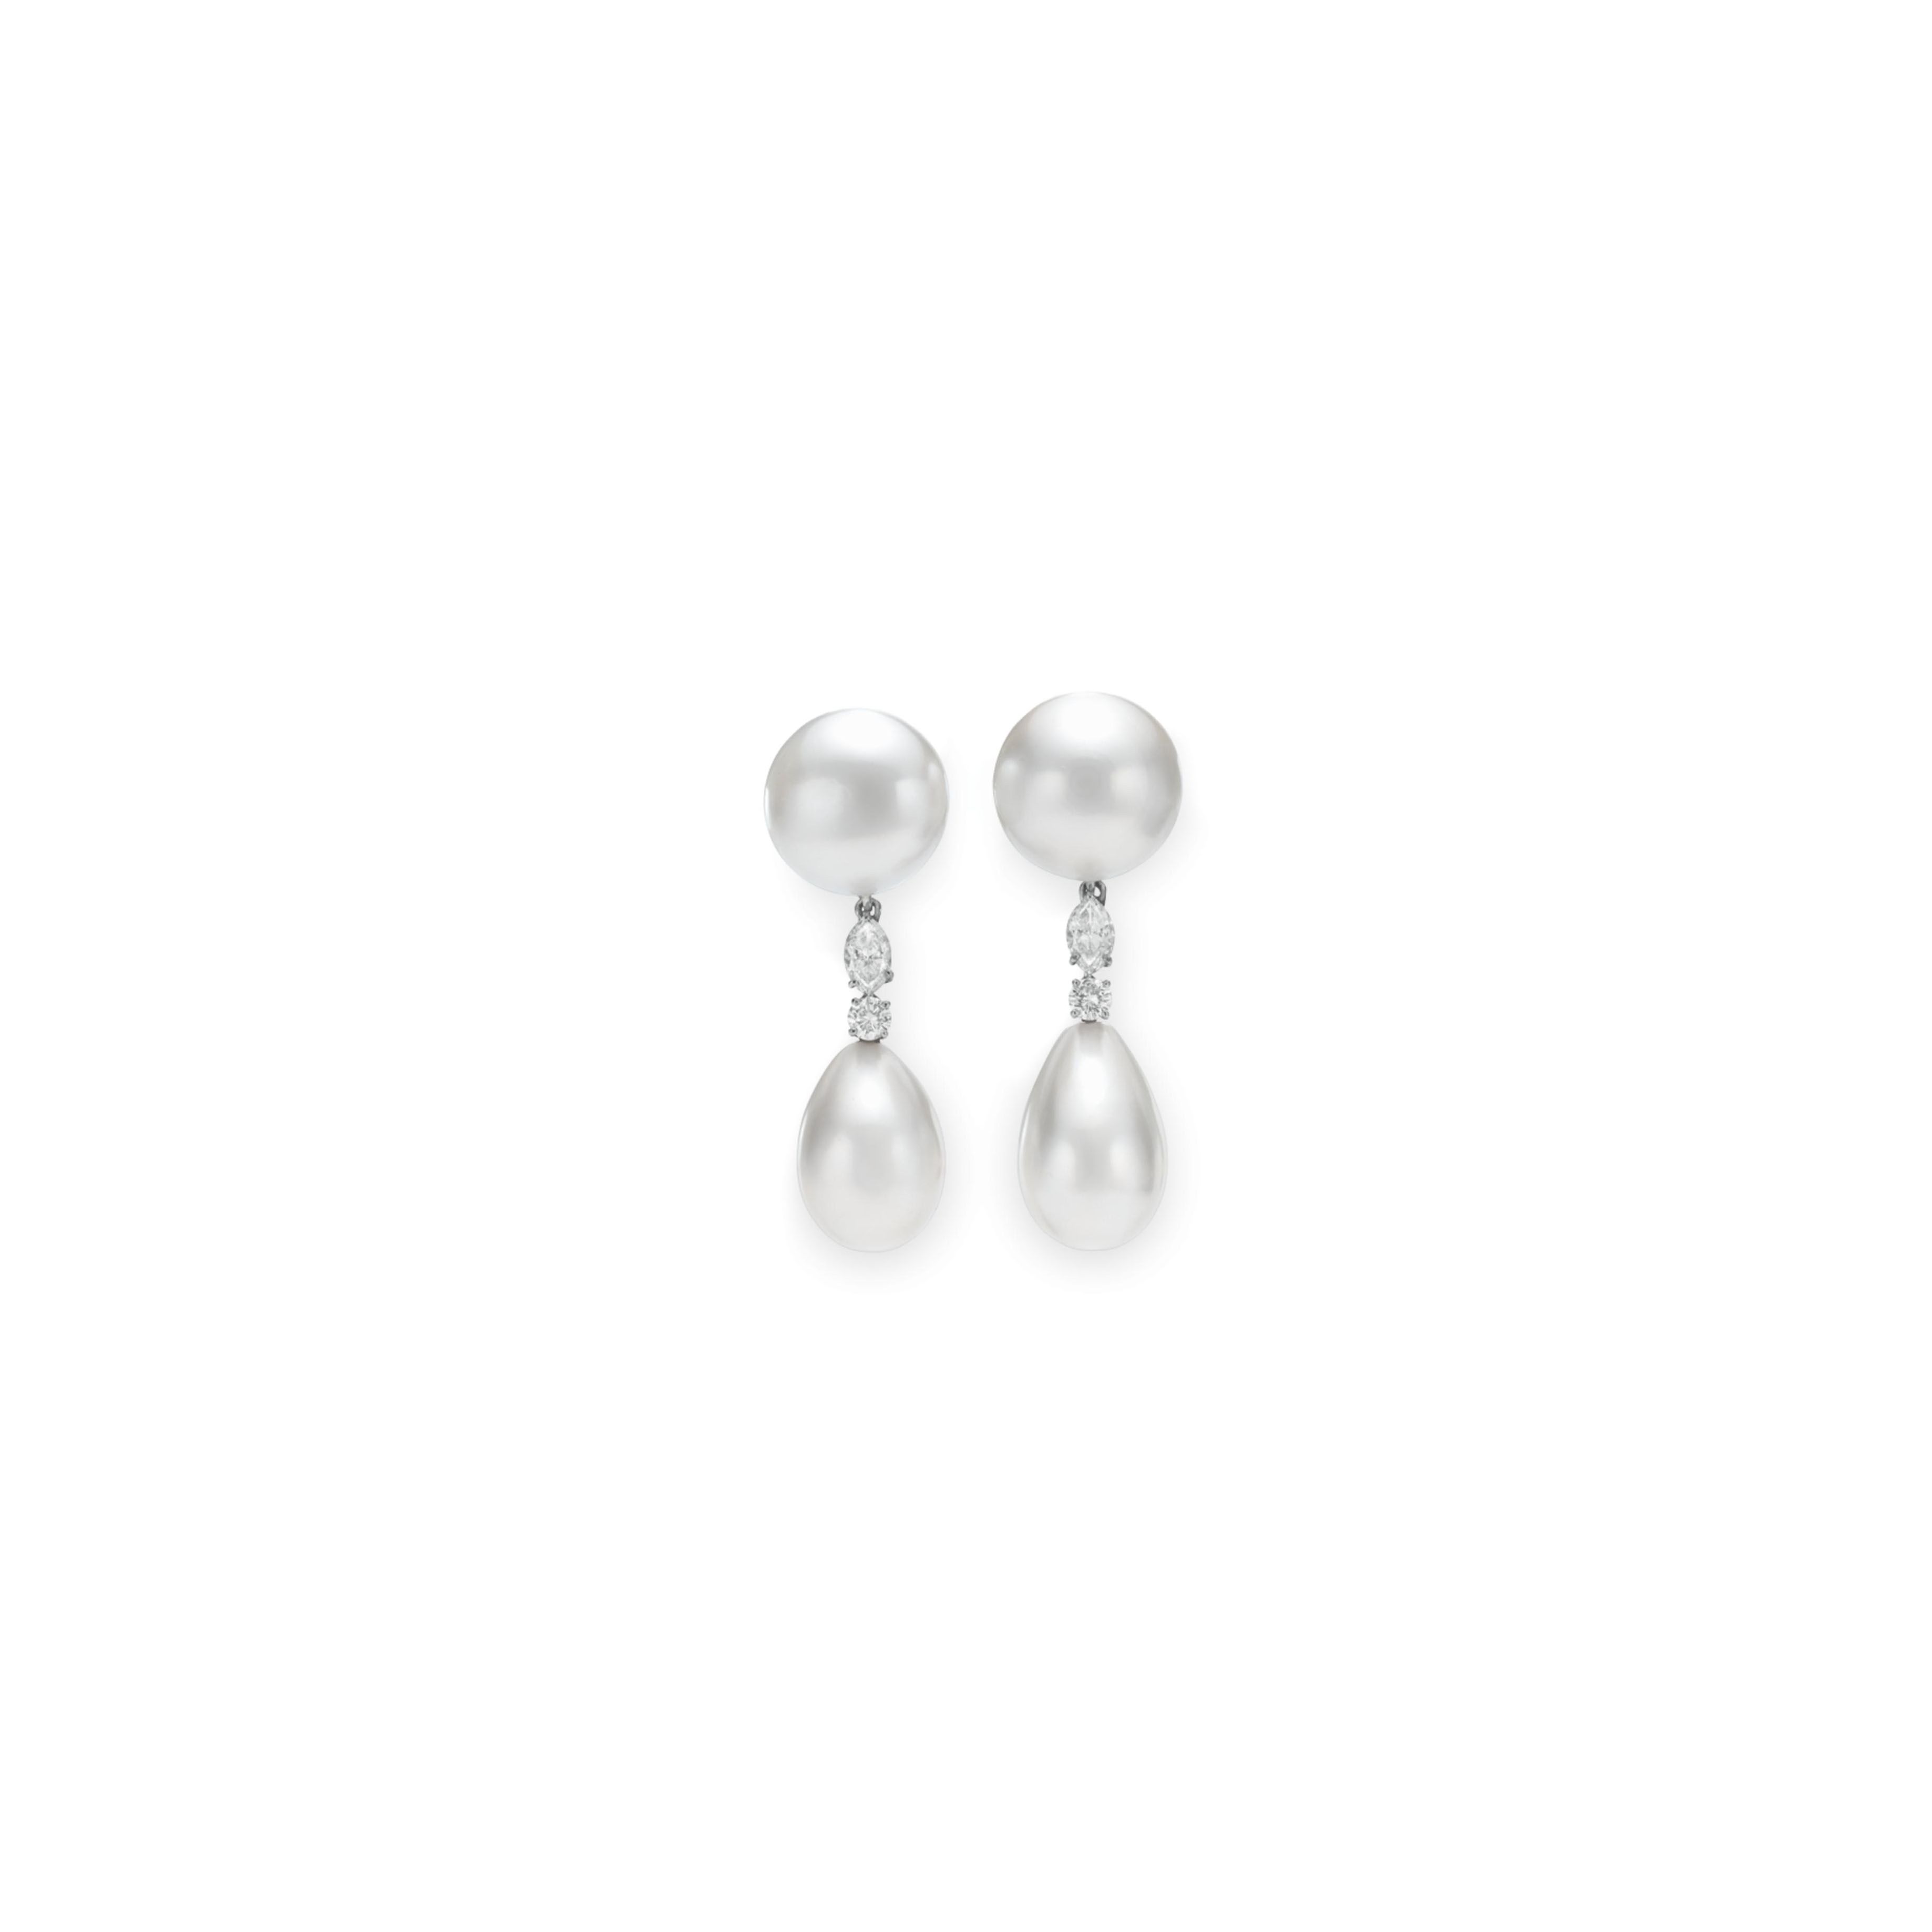 A PAIR OF NATURAL PEARL AND DIAMOND EAR PENDANTS, BY BVLGARI